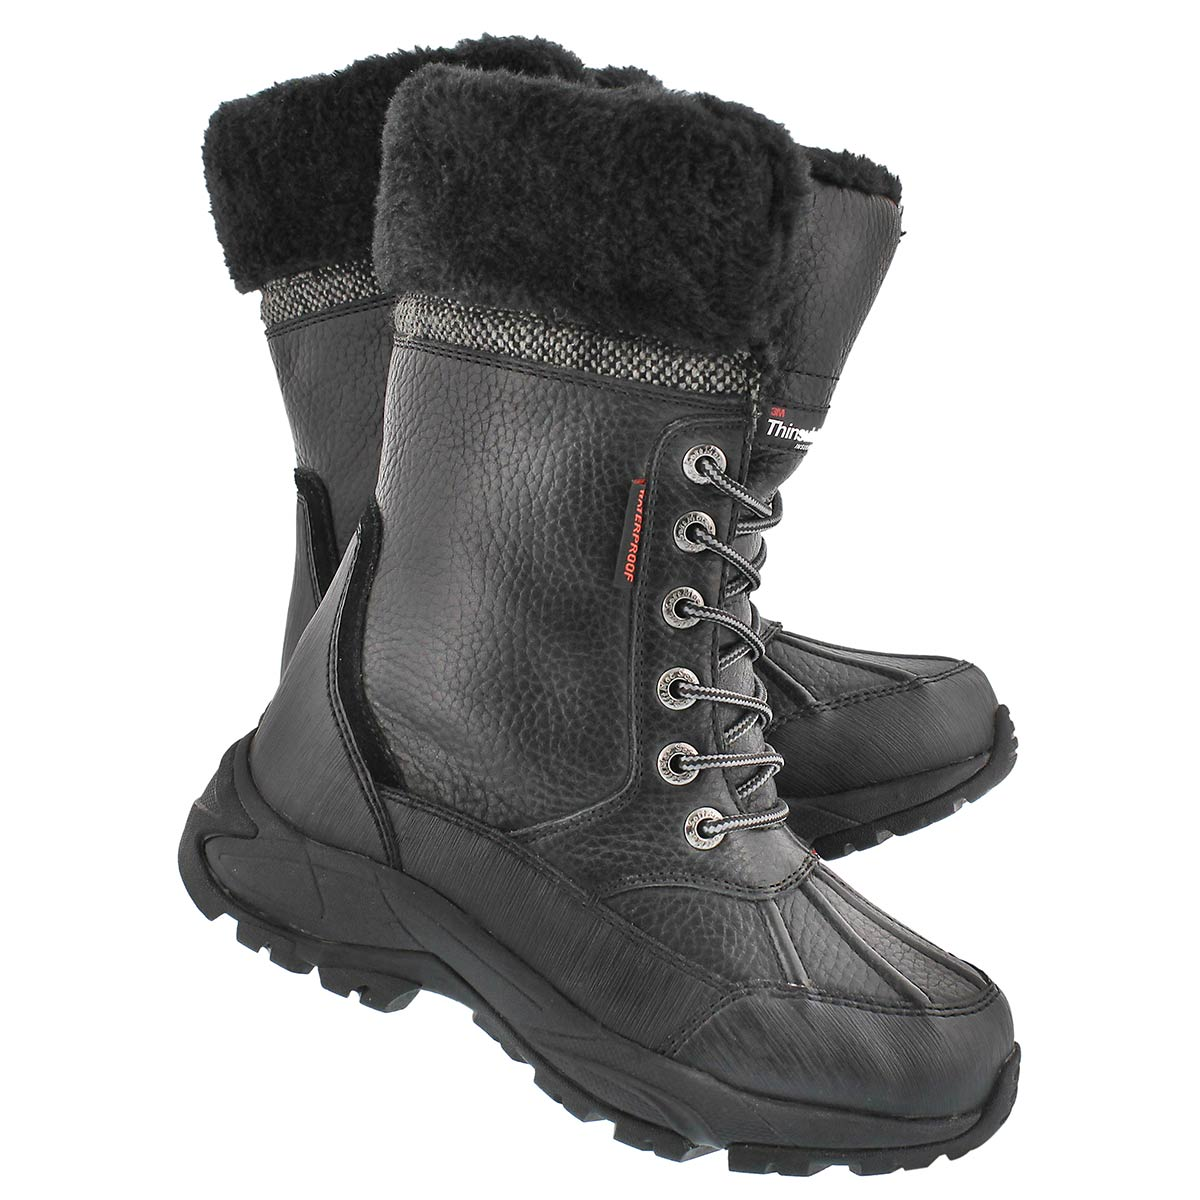 Lds Megan black lace-up wtpf winter boot